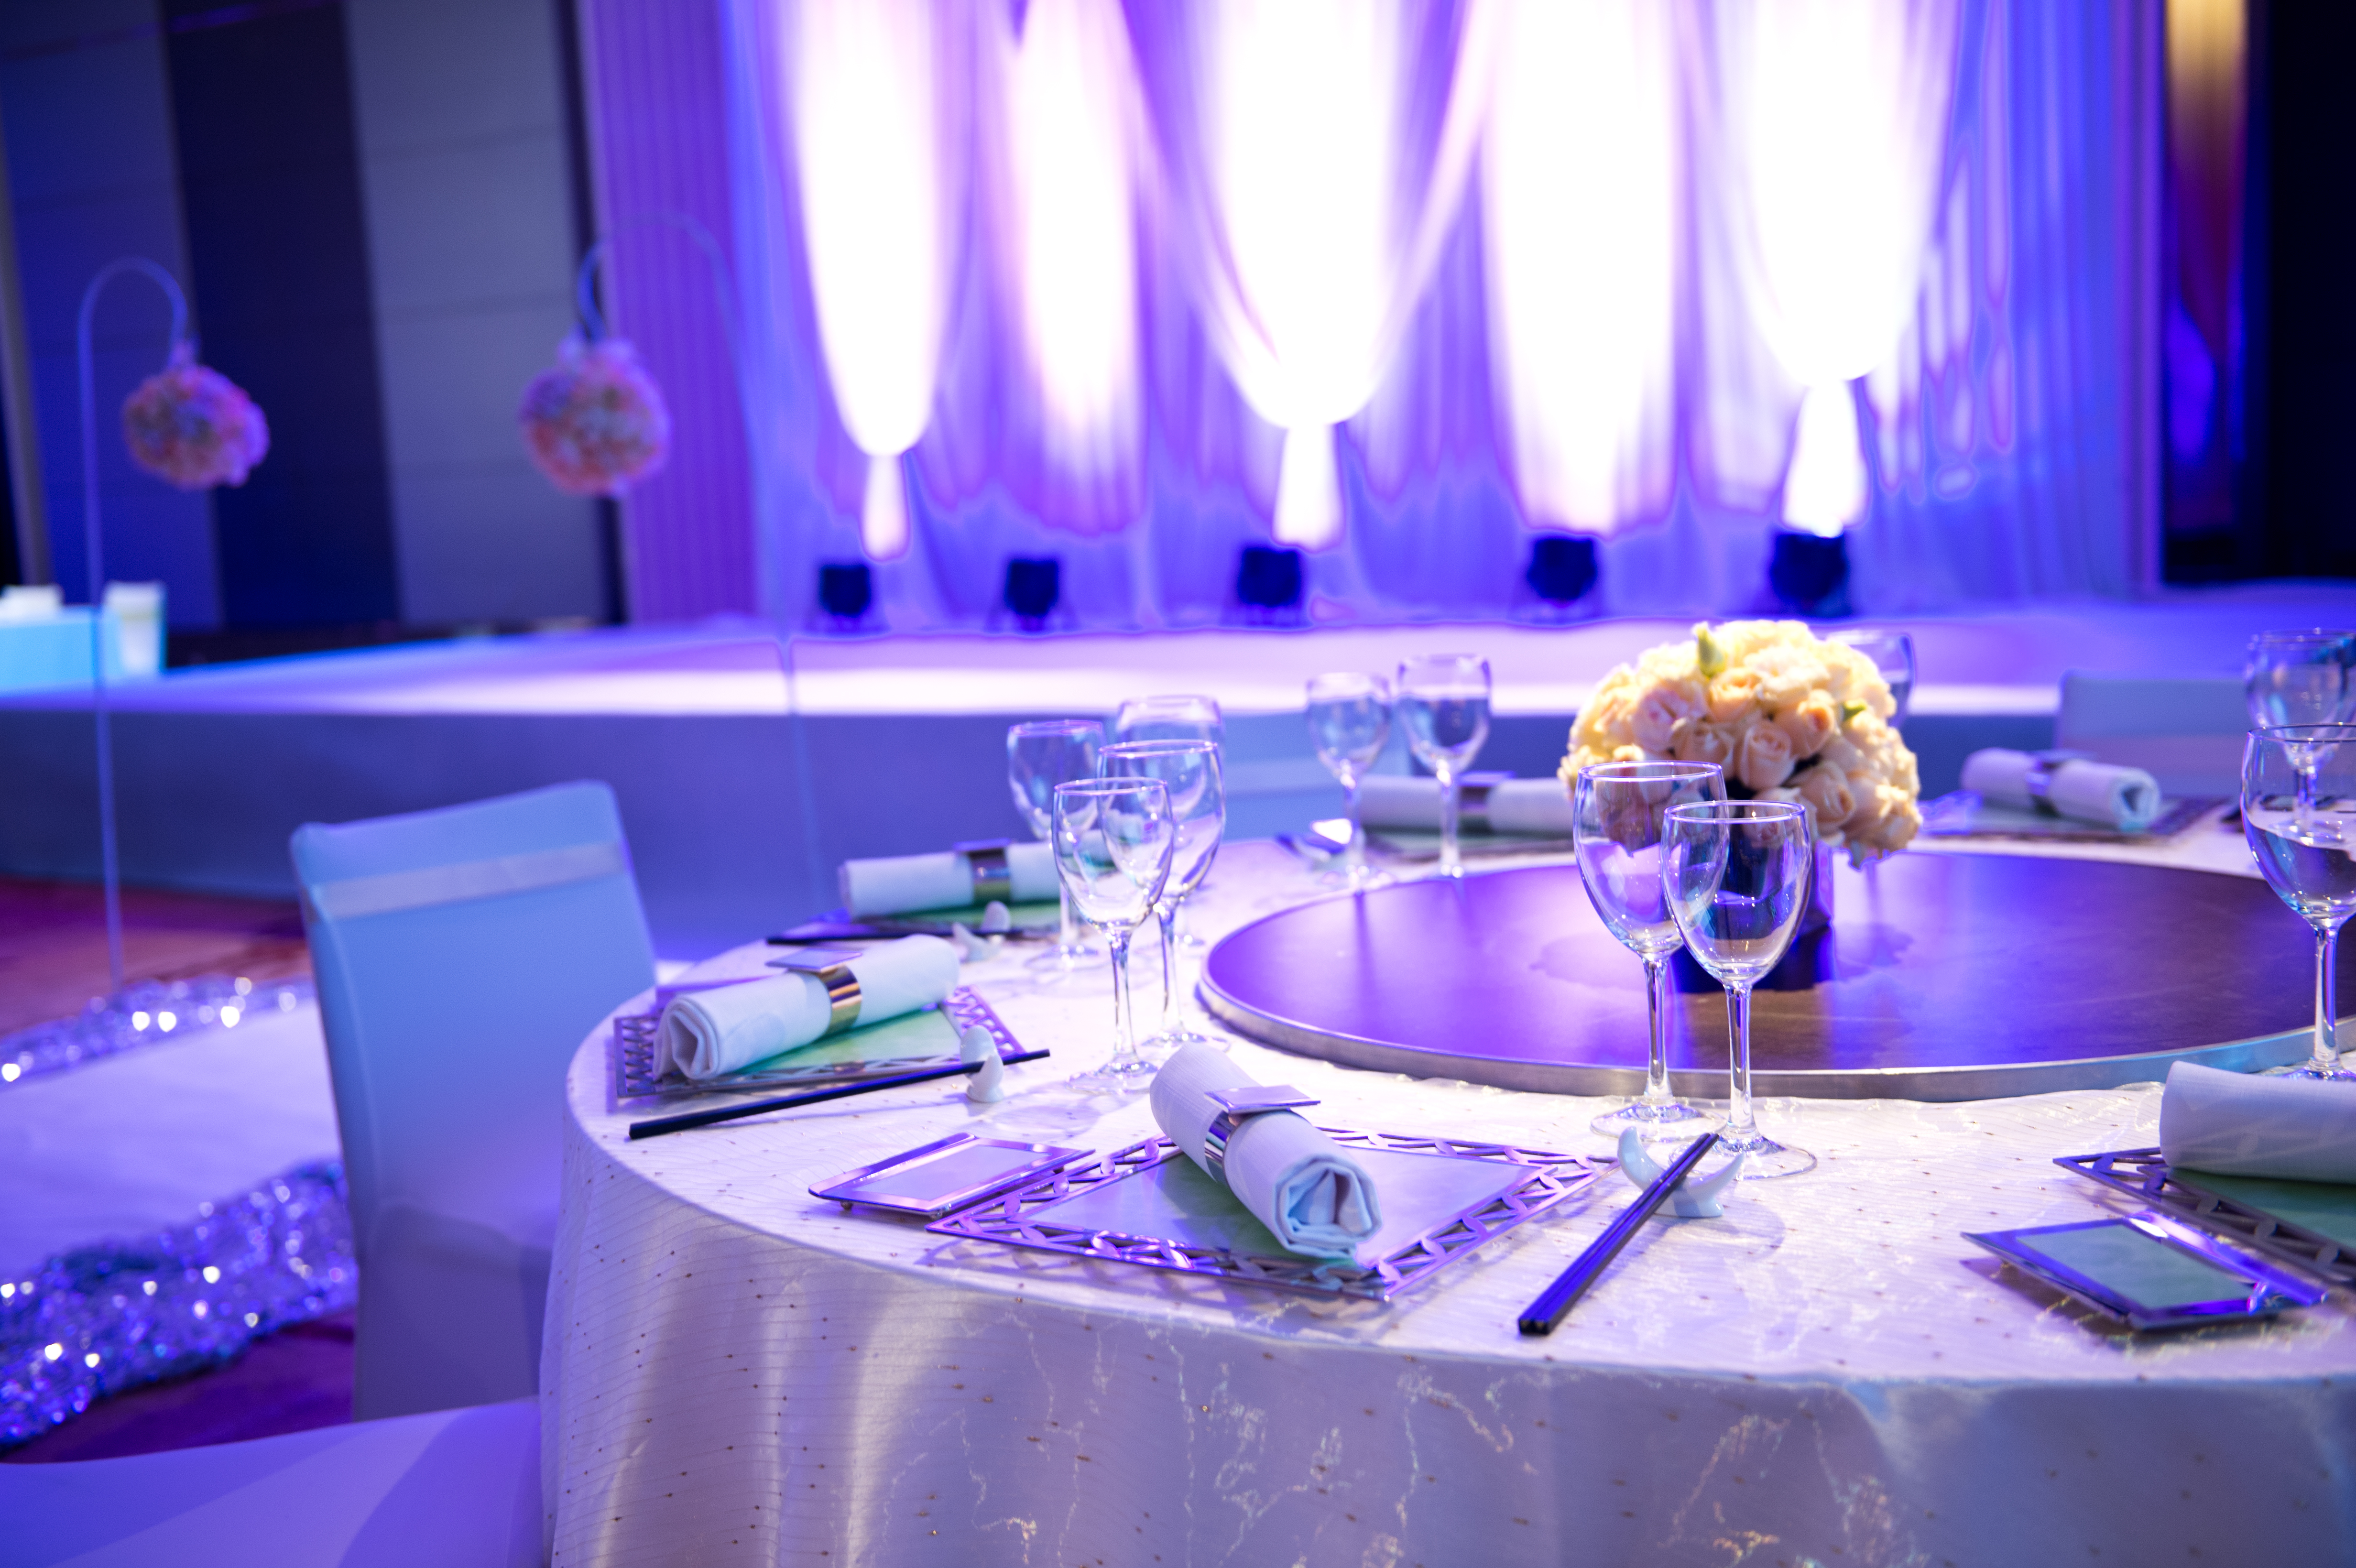 Lighting and Decor by Pure Energy Productions